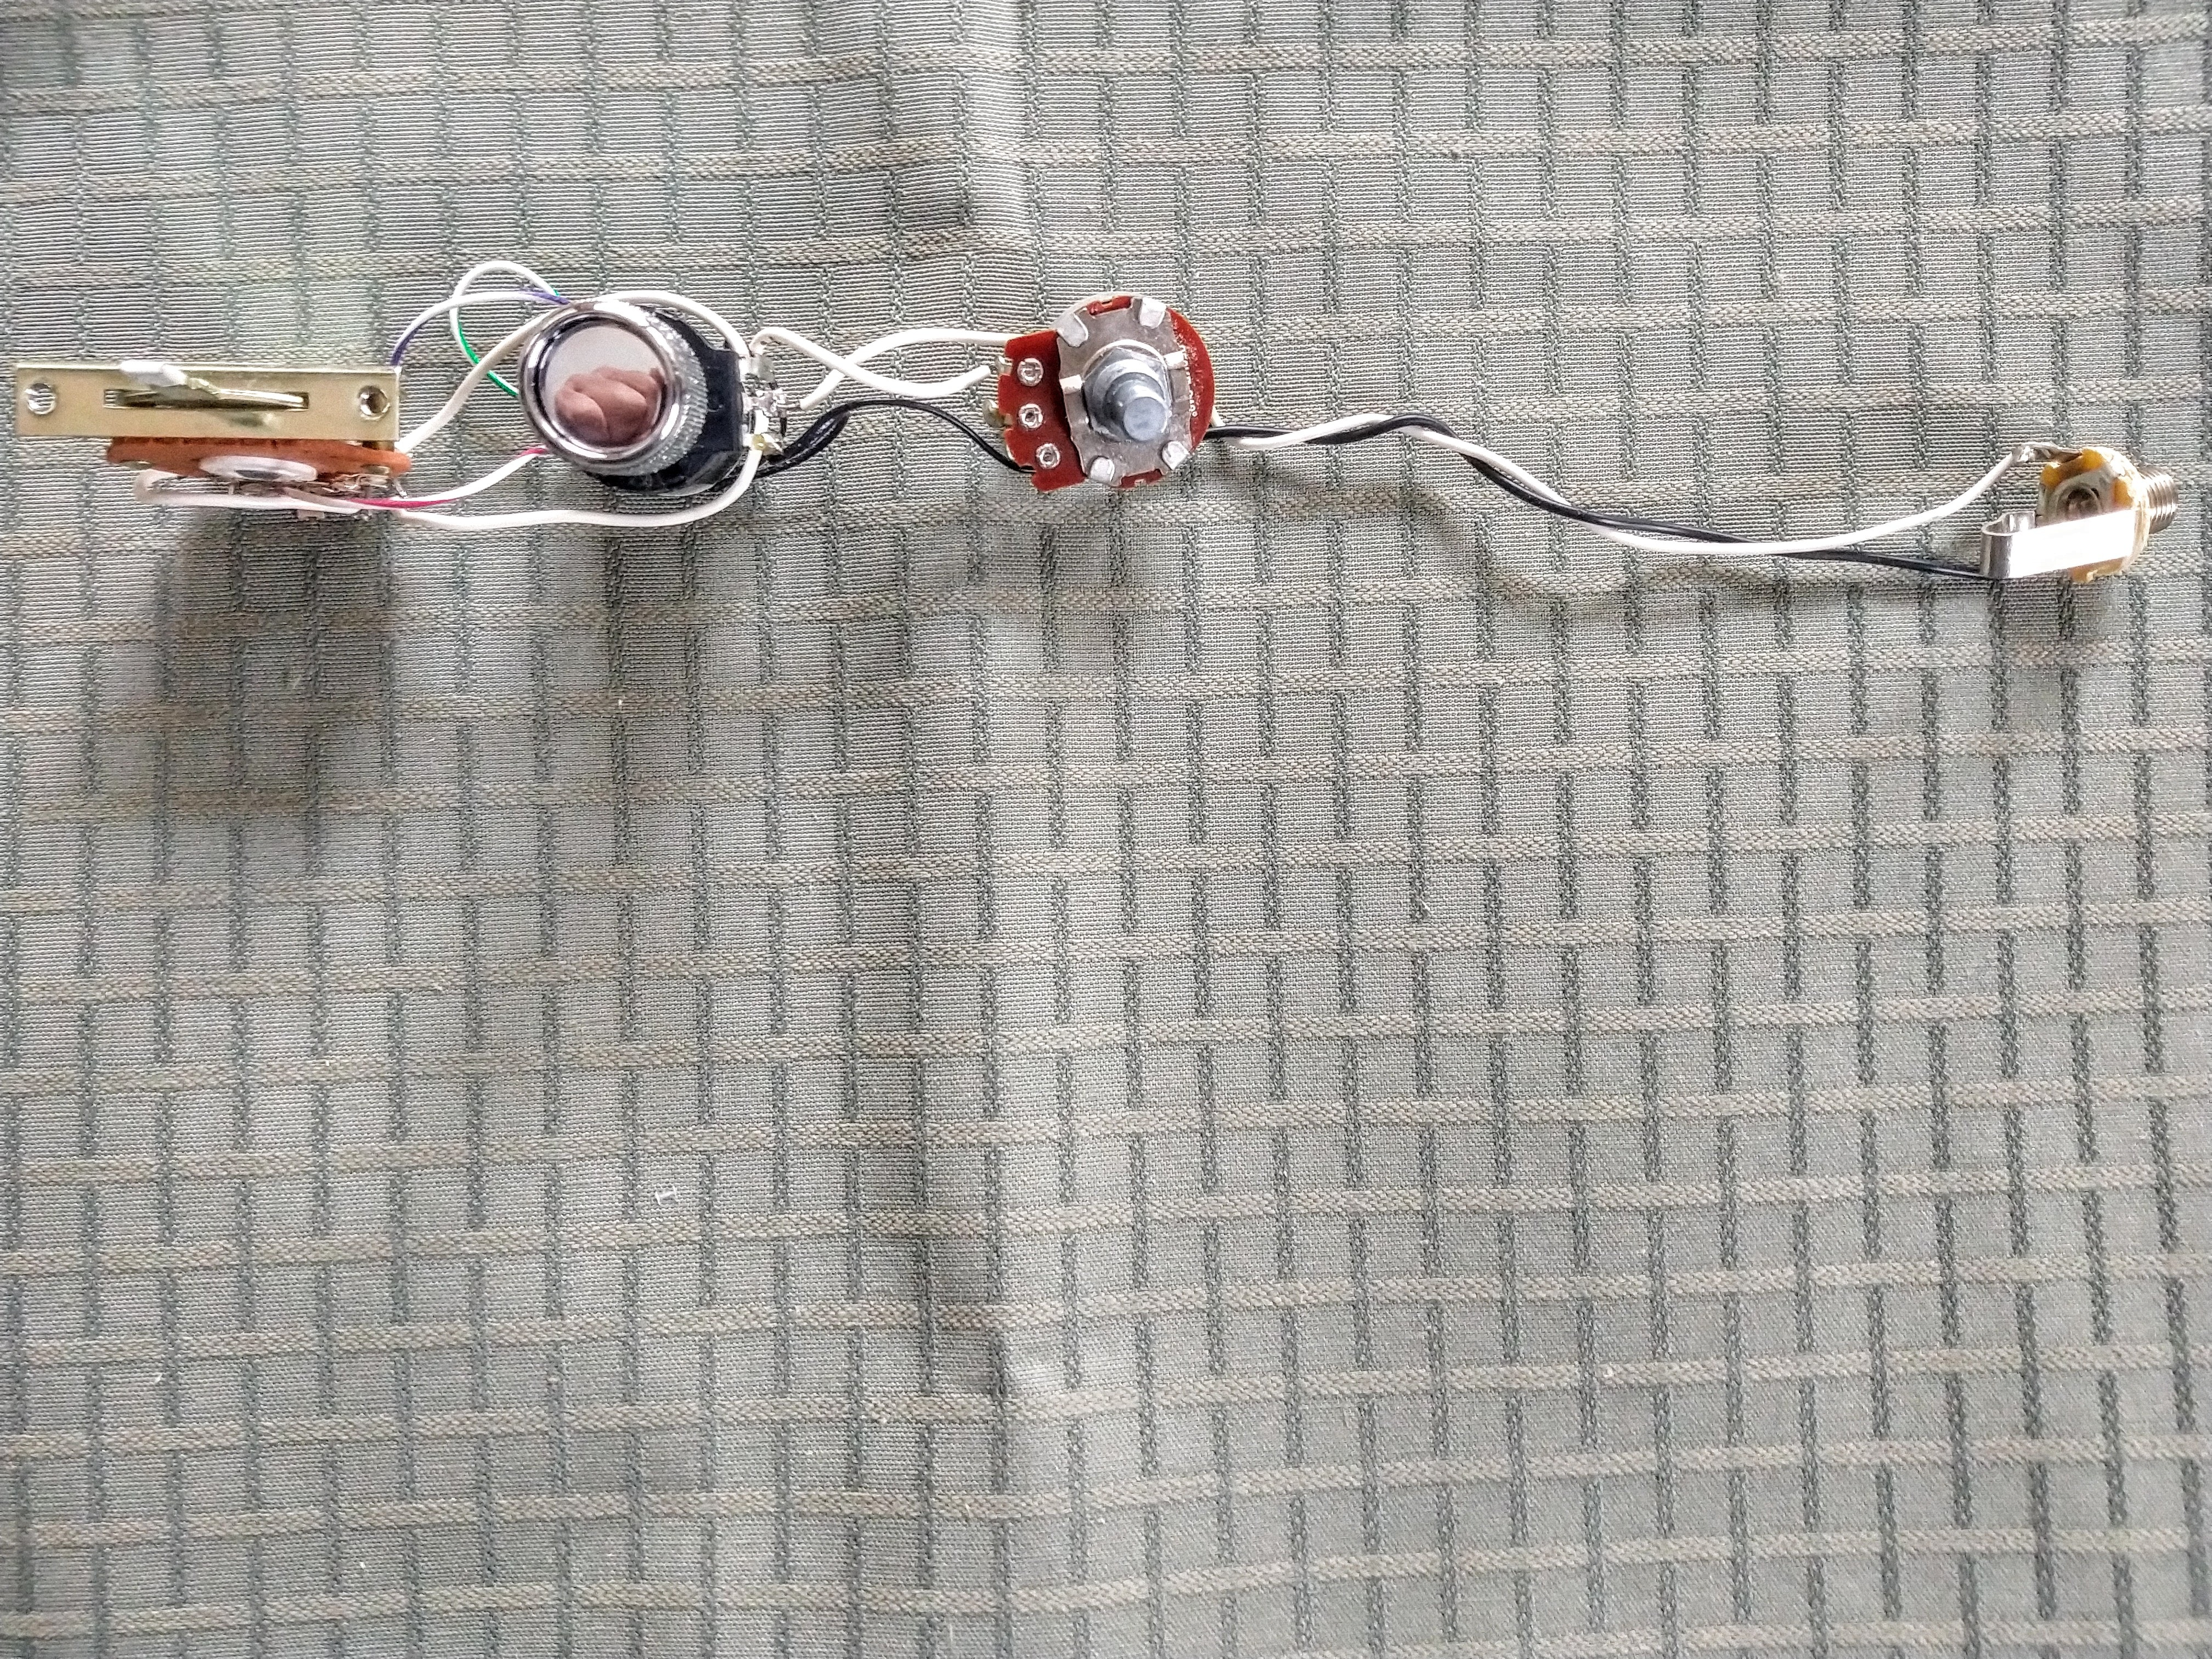 2010 Fender American Telecaster Deluxe S1 Wiring Harness